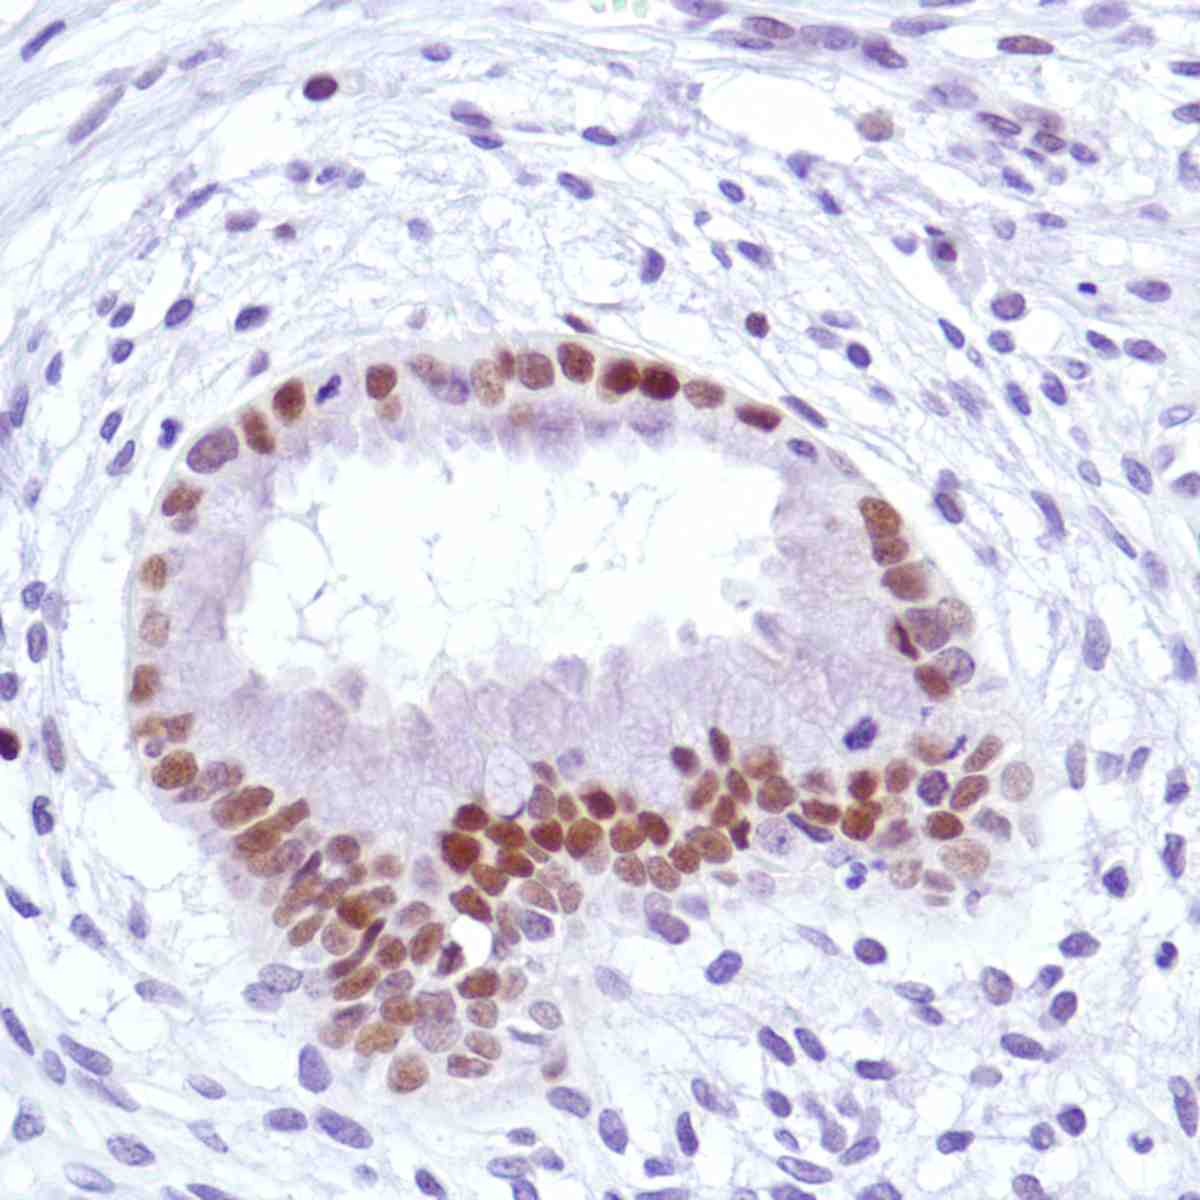 Human Uterus stained with anti-Cyclin D3 antibody